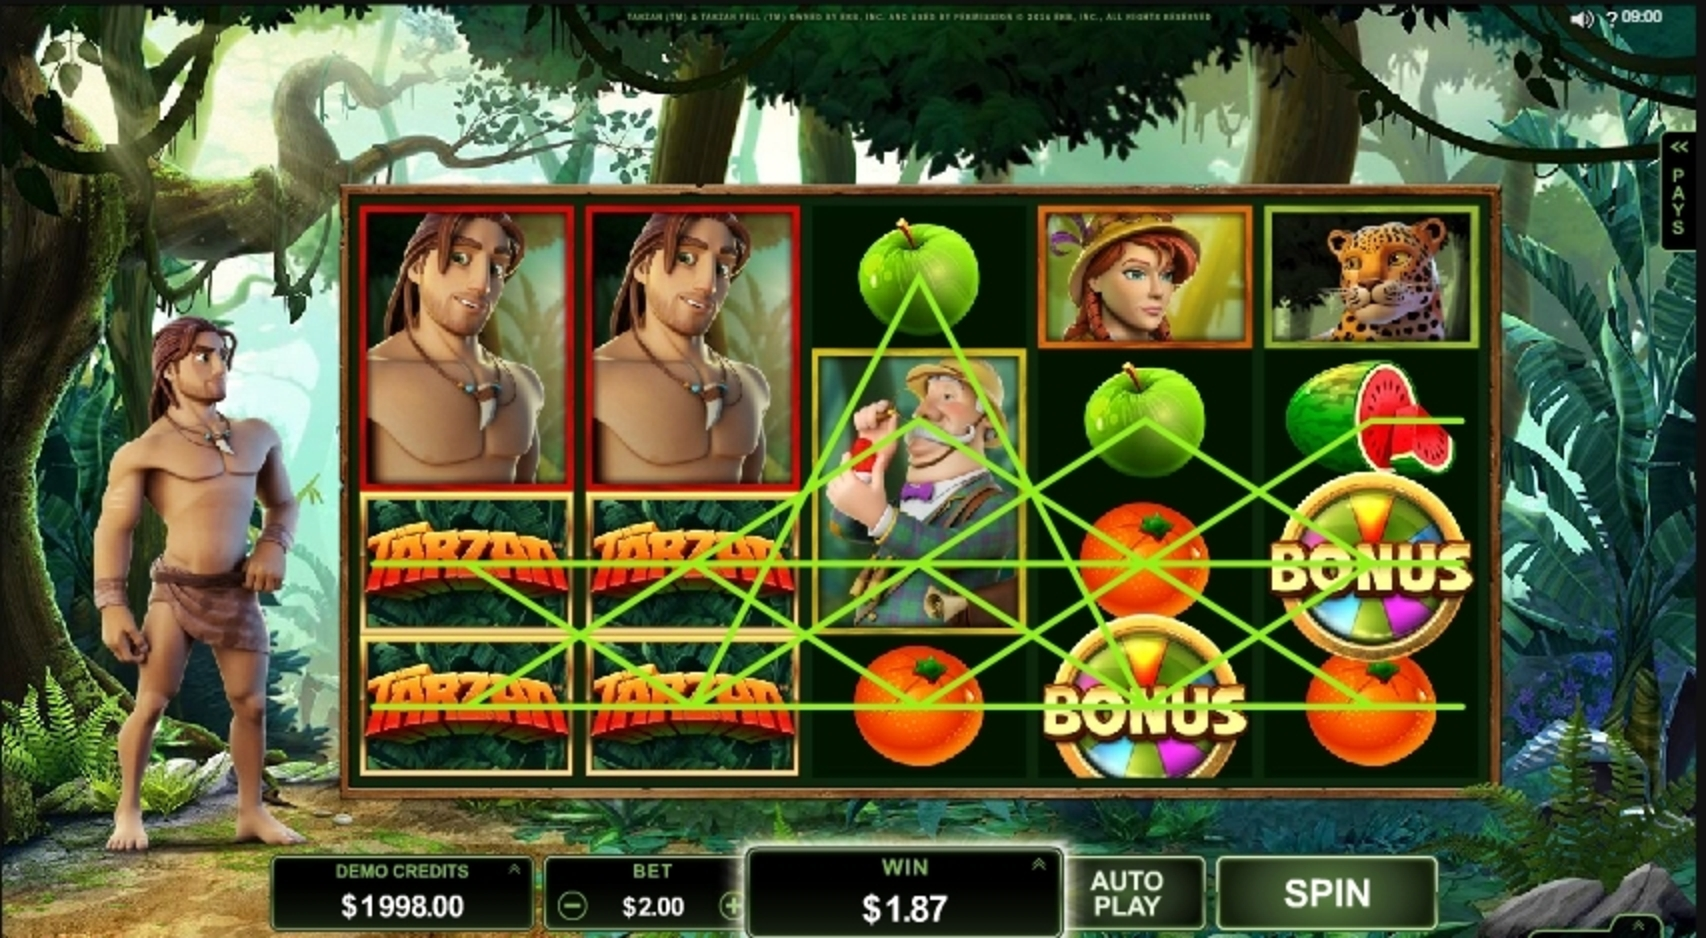 Win Money in Tarzan Free Slot Game by Microgaming